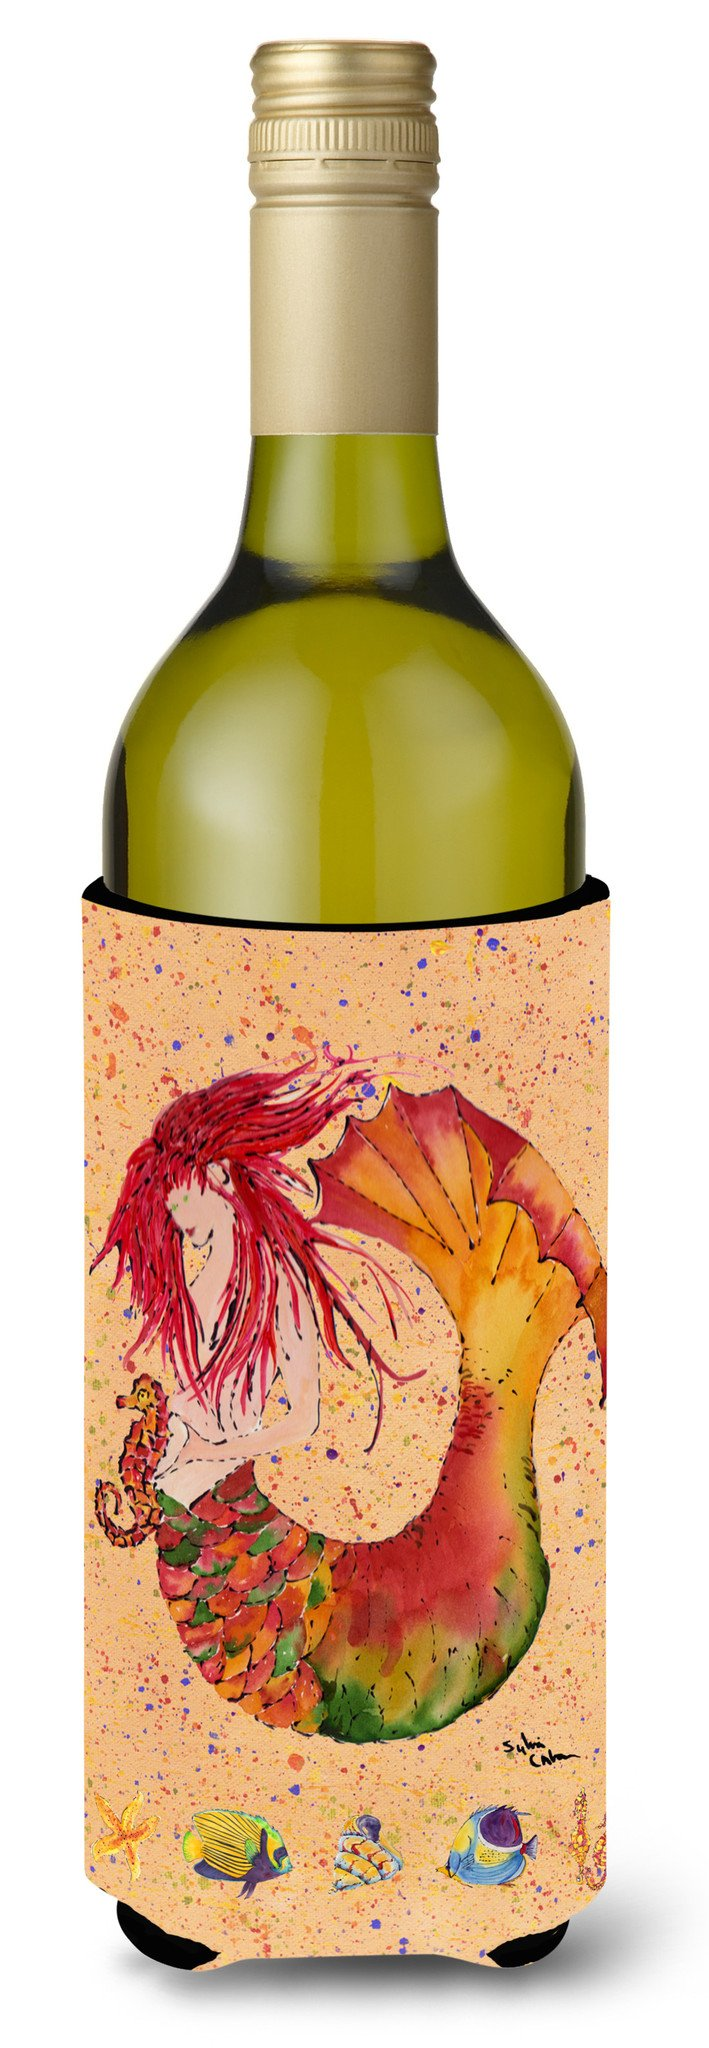 Red Headed Ginger Mermaid on Coral Wine Bottle Beverage Insulator Beverage Insulator Hugger by Caroline's Treasures